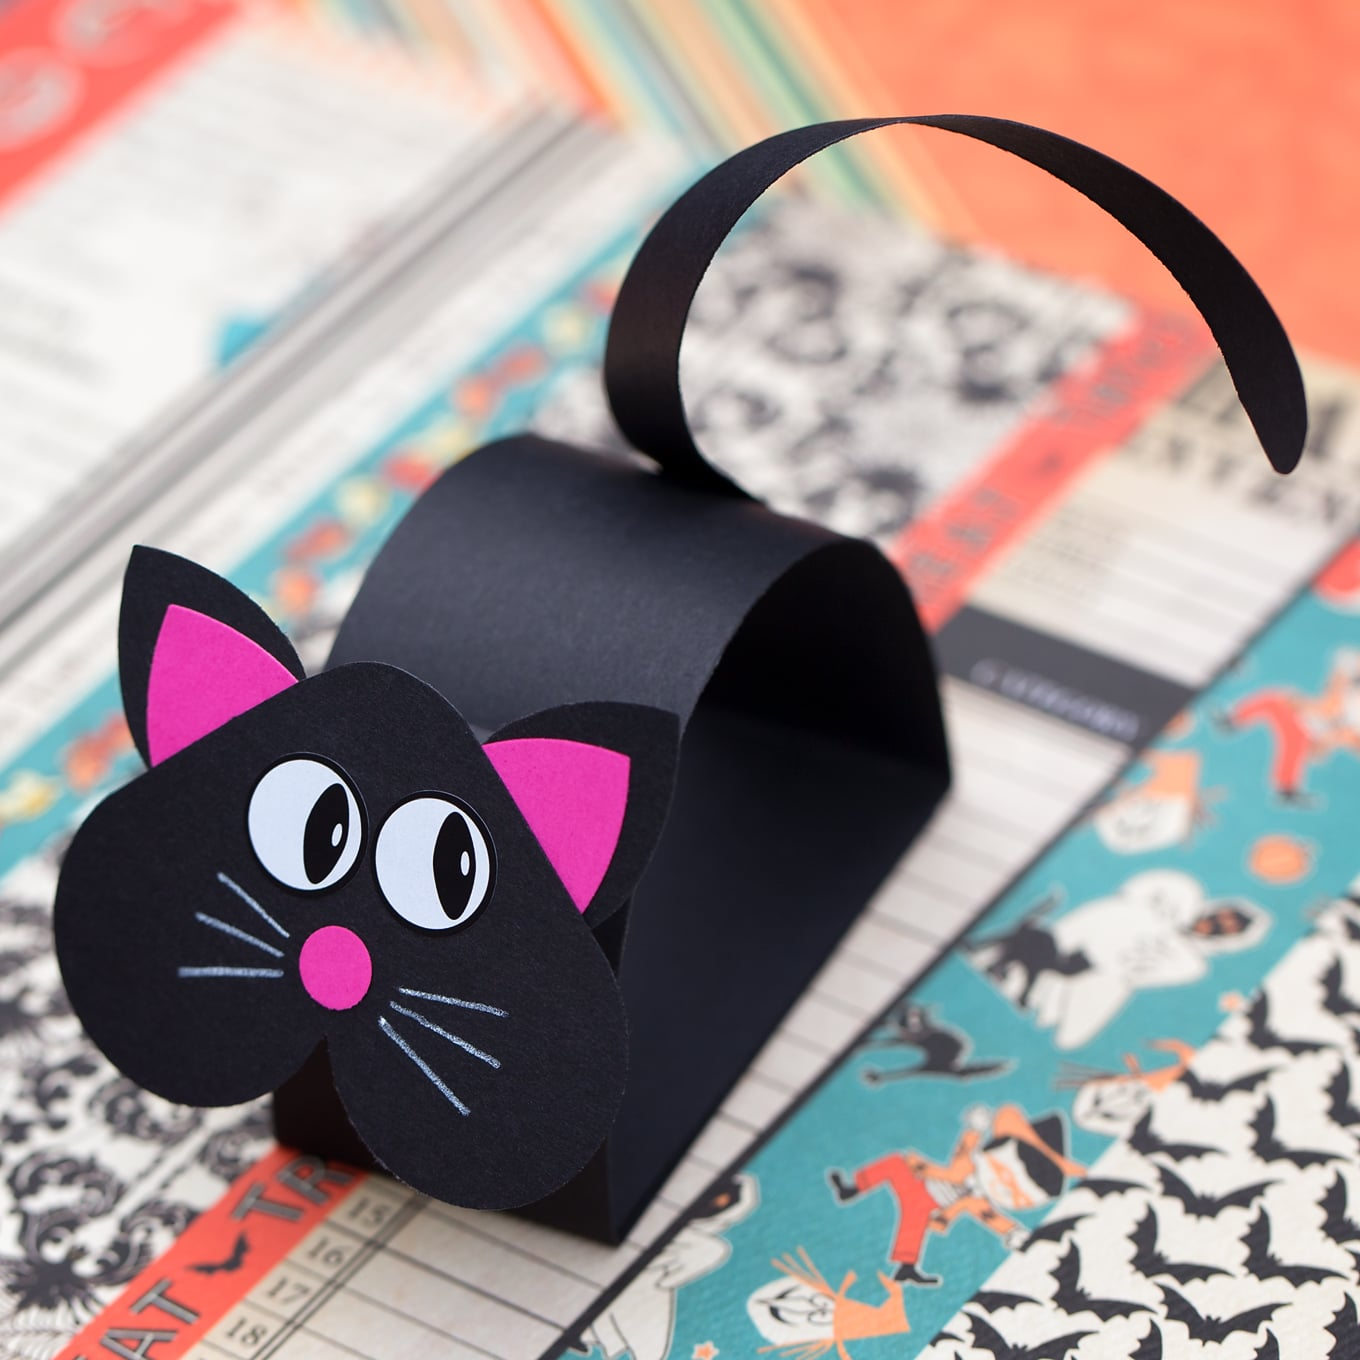 How to Make a Cute Black Cat Craft for Halloween